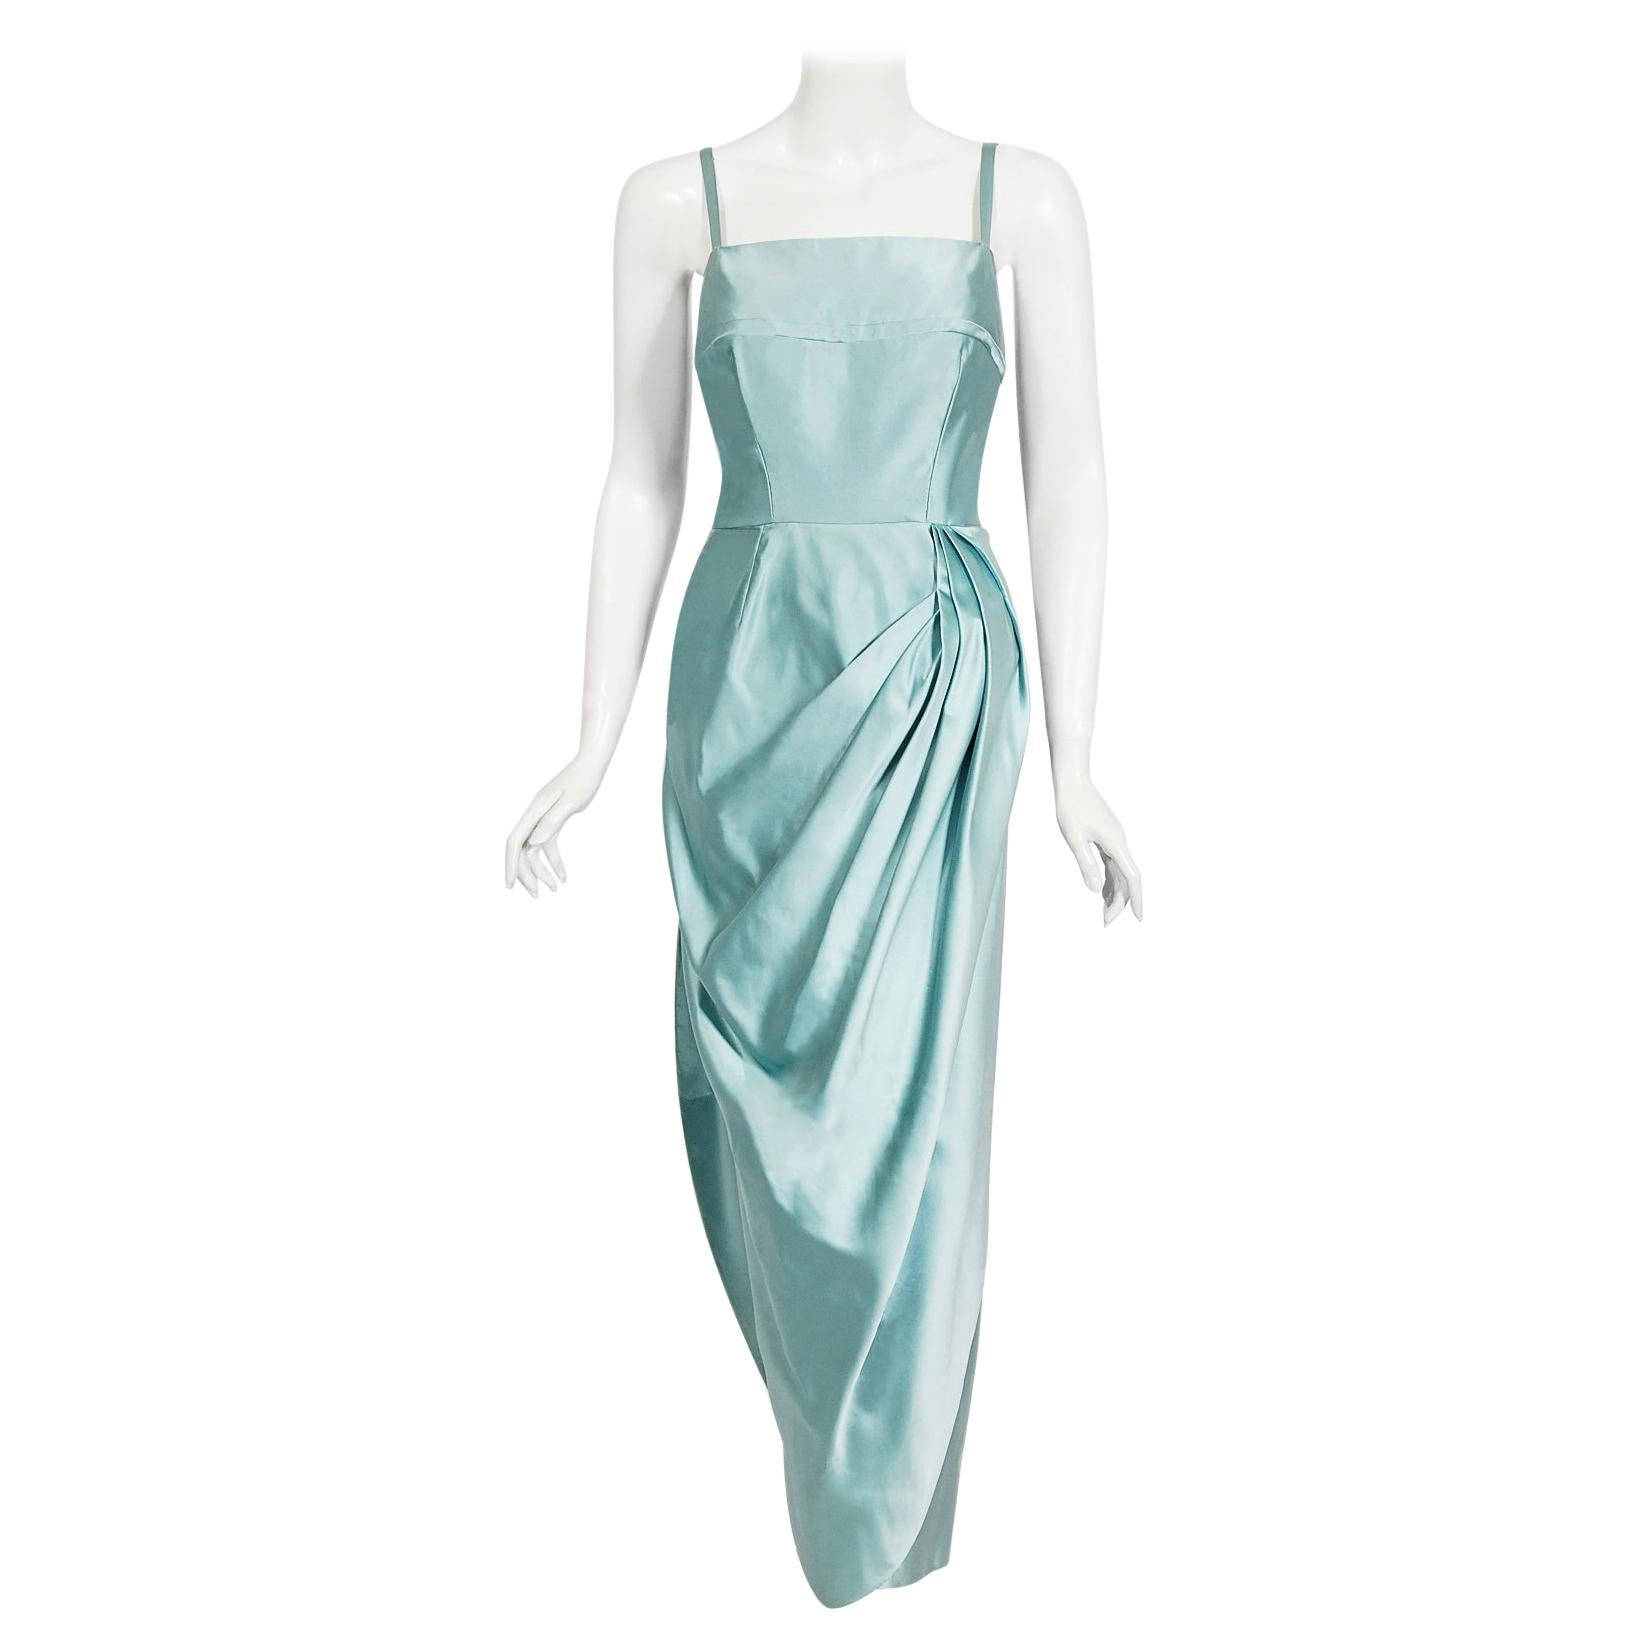 Vintage 1950's Sophie Gimbel Ice-Blue Silk Satin Draped Fitted Hourglass Gown